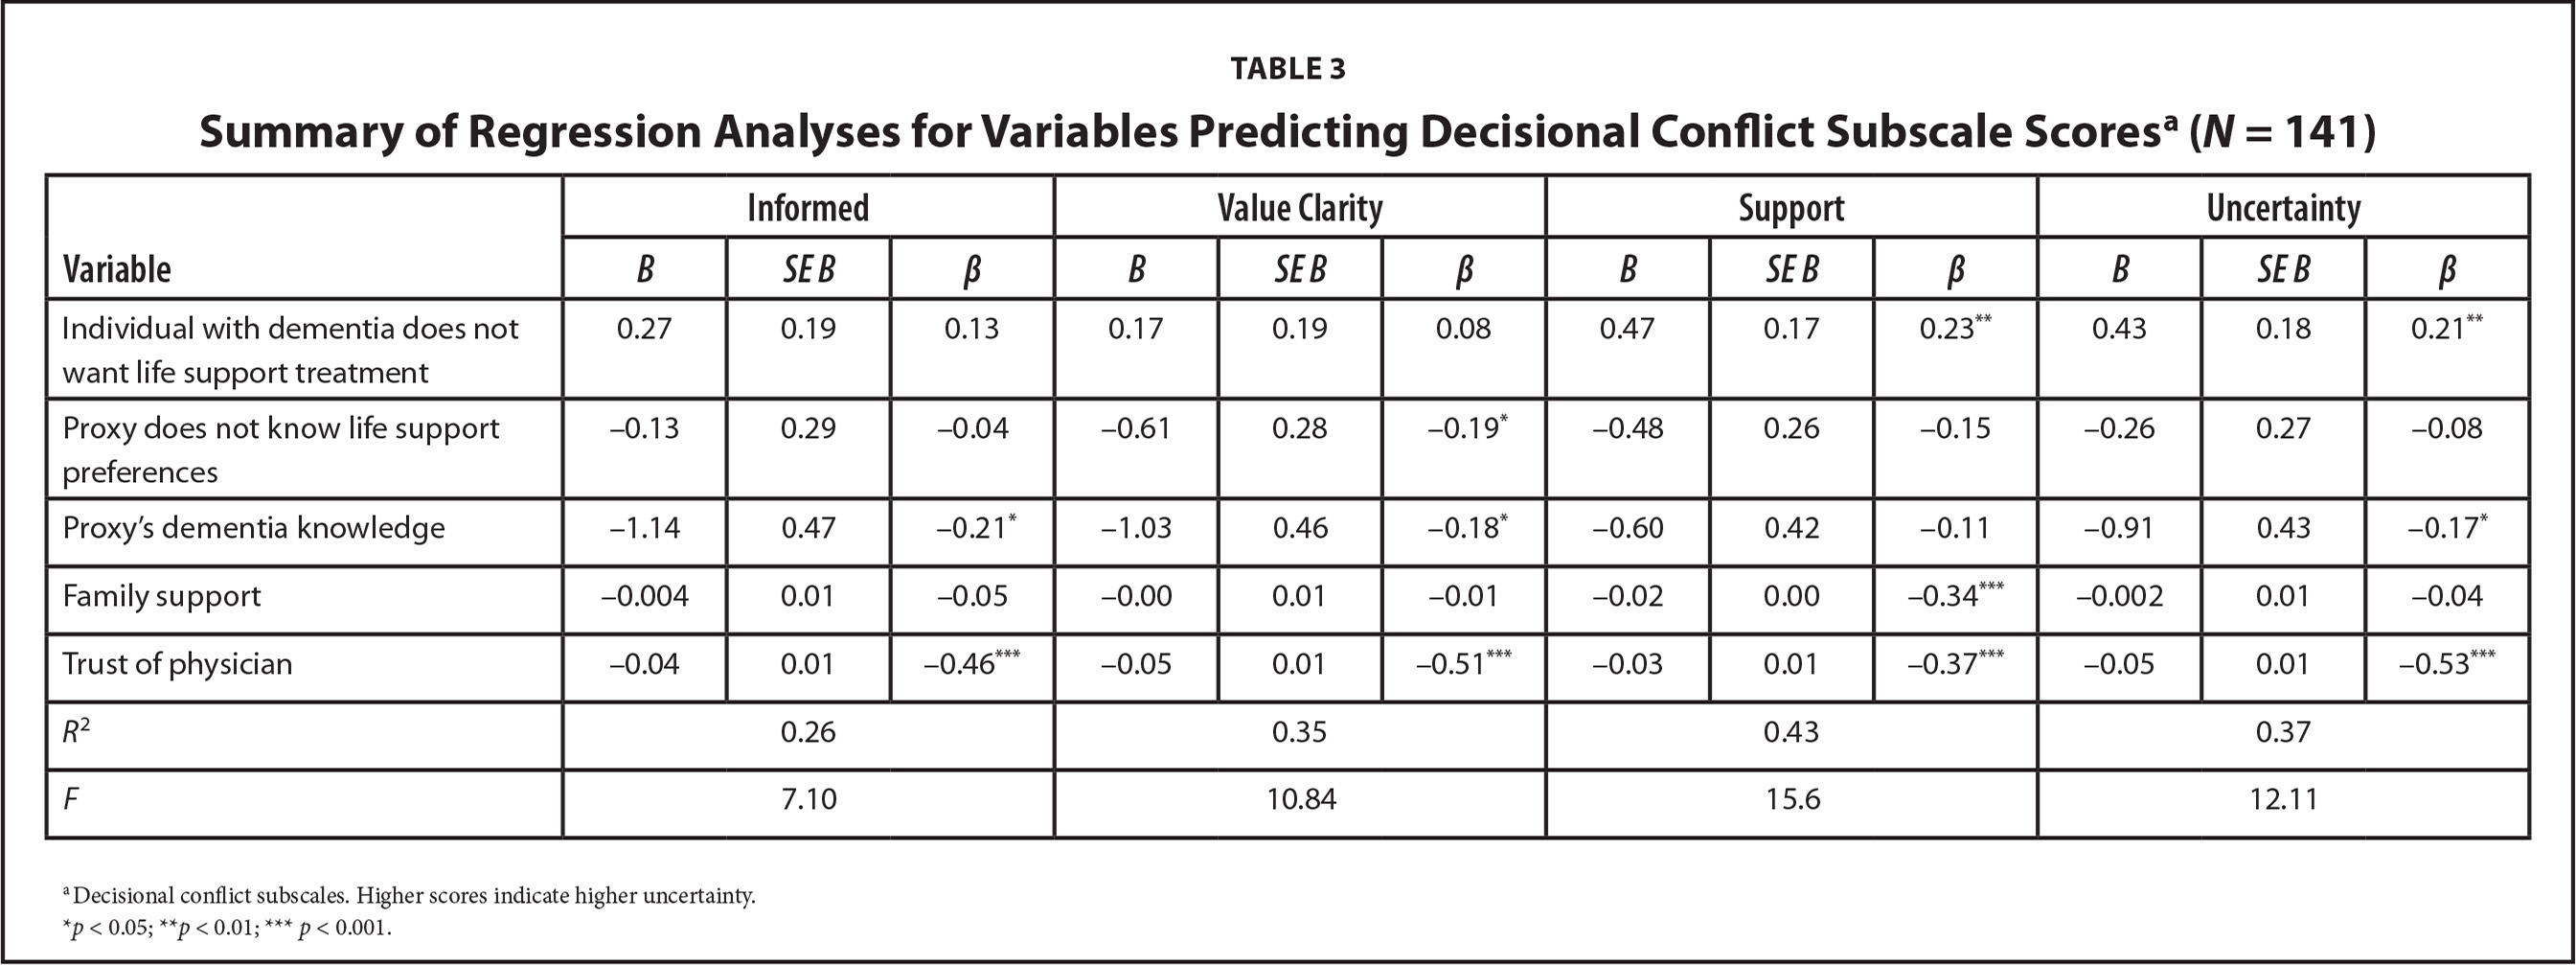 Summary of Regression Analyses for Variables Predicting Decisional Conflict Subscale Scoresa (N = 141)